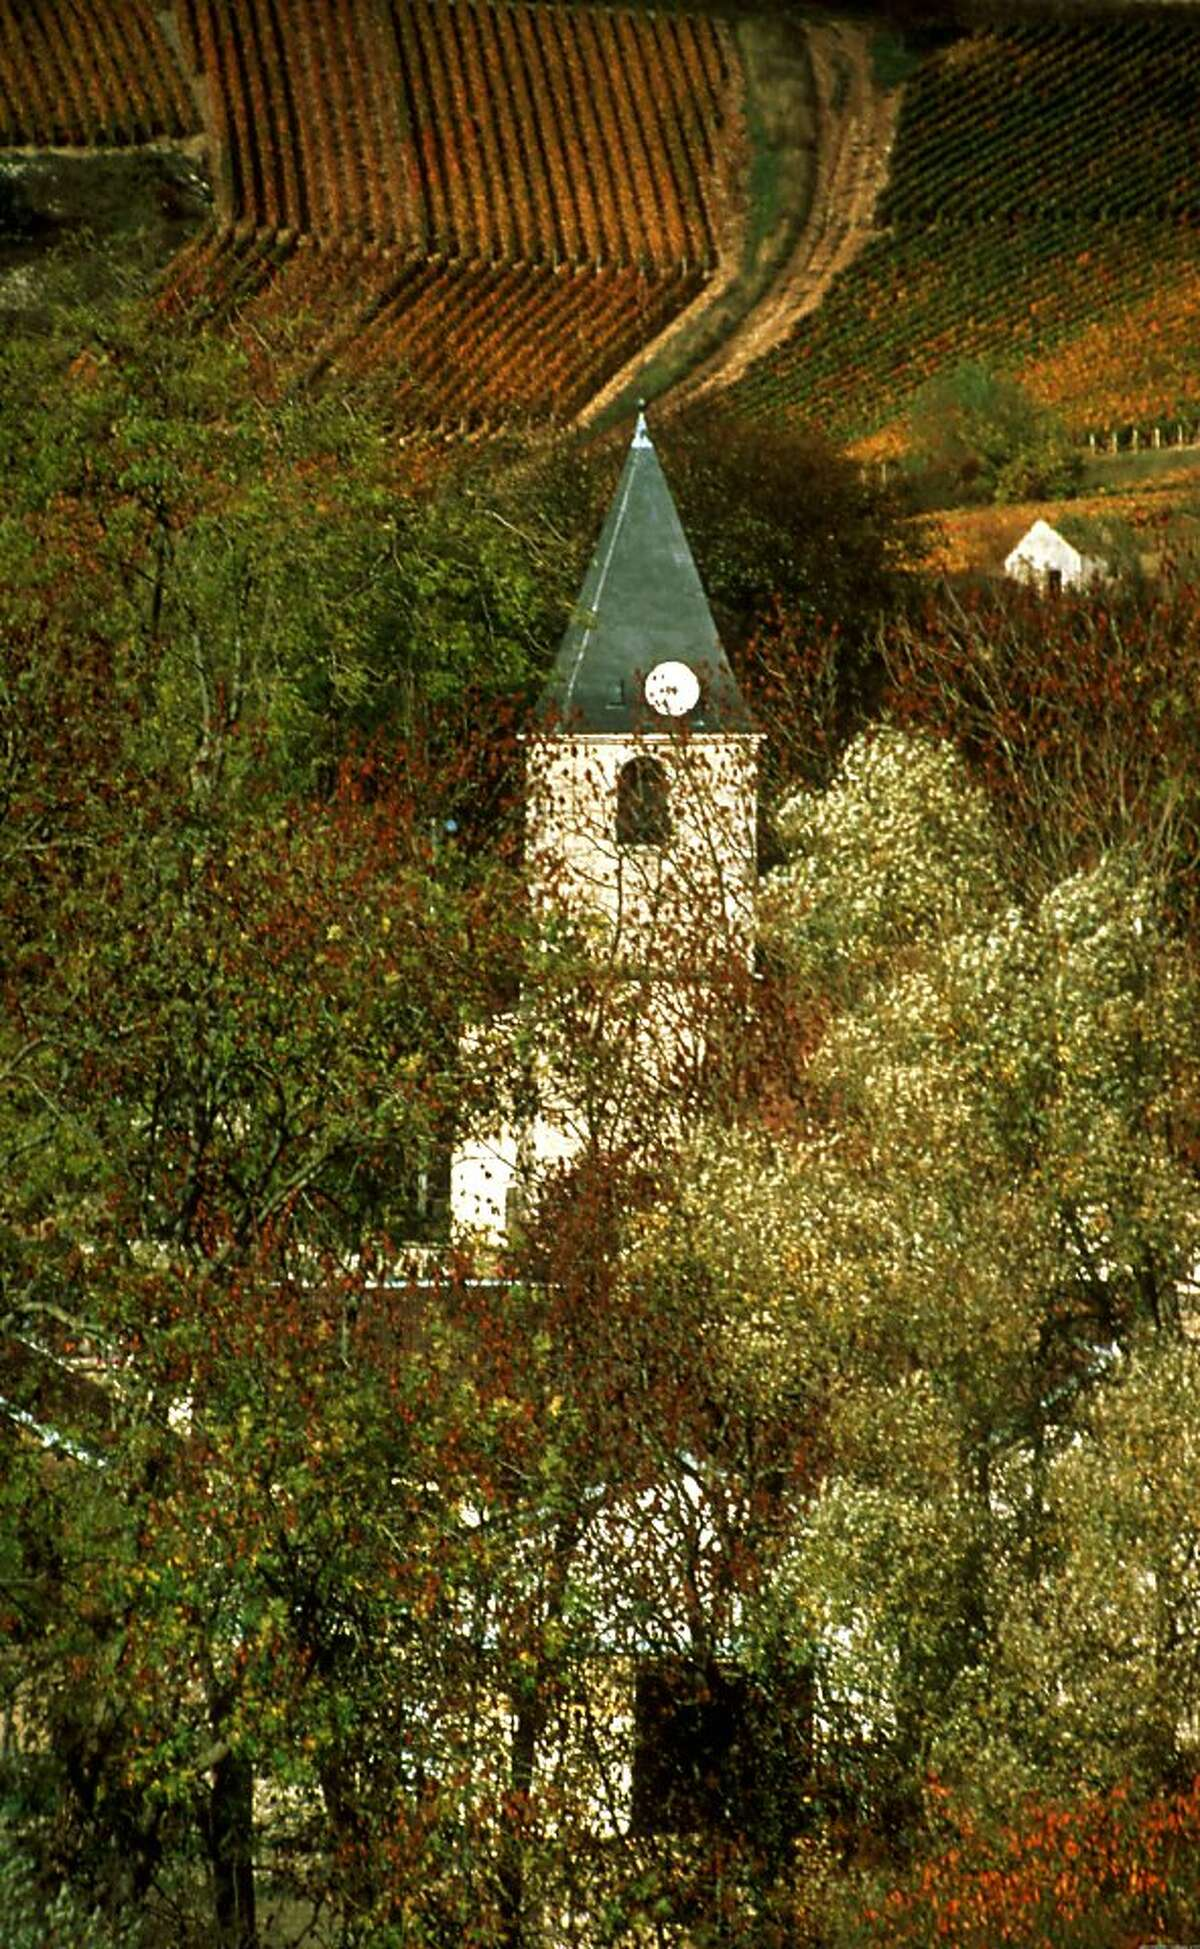 An autumn view of the town of Urville in the Aube region of Champagne in this 1996 photo.